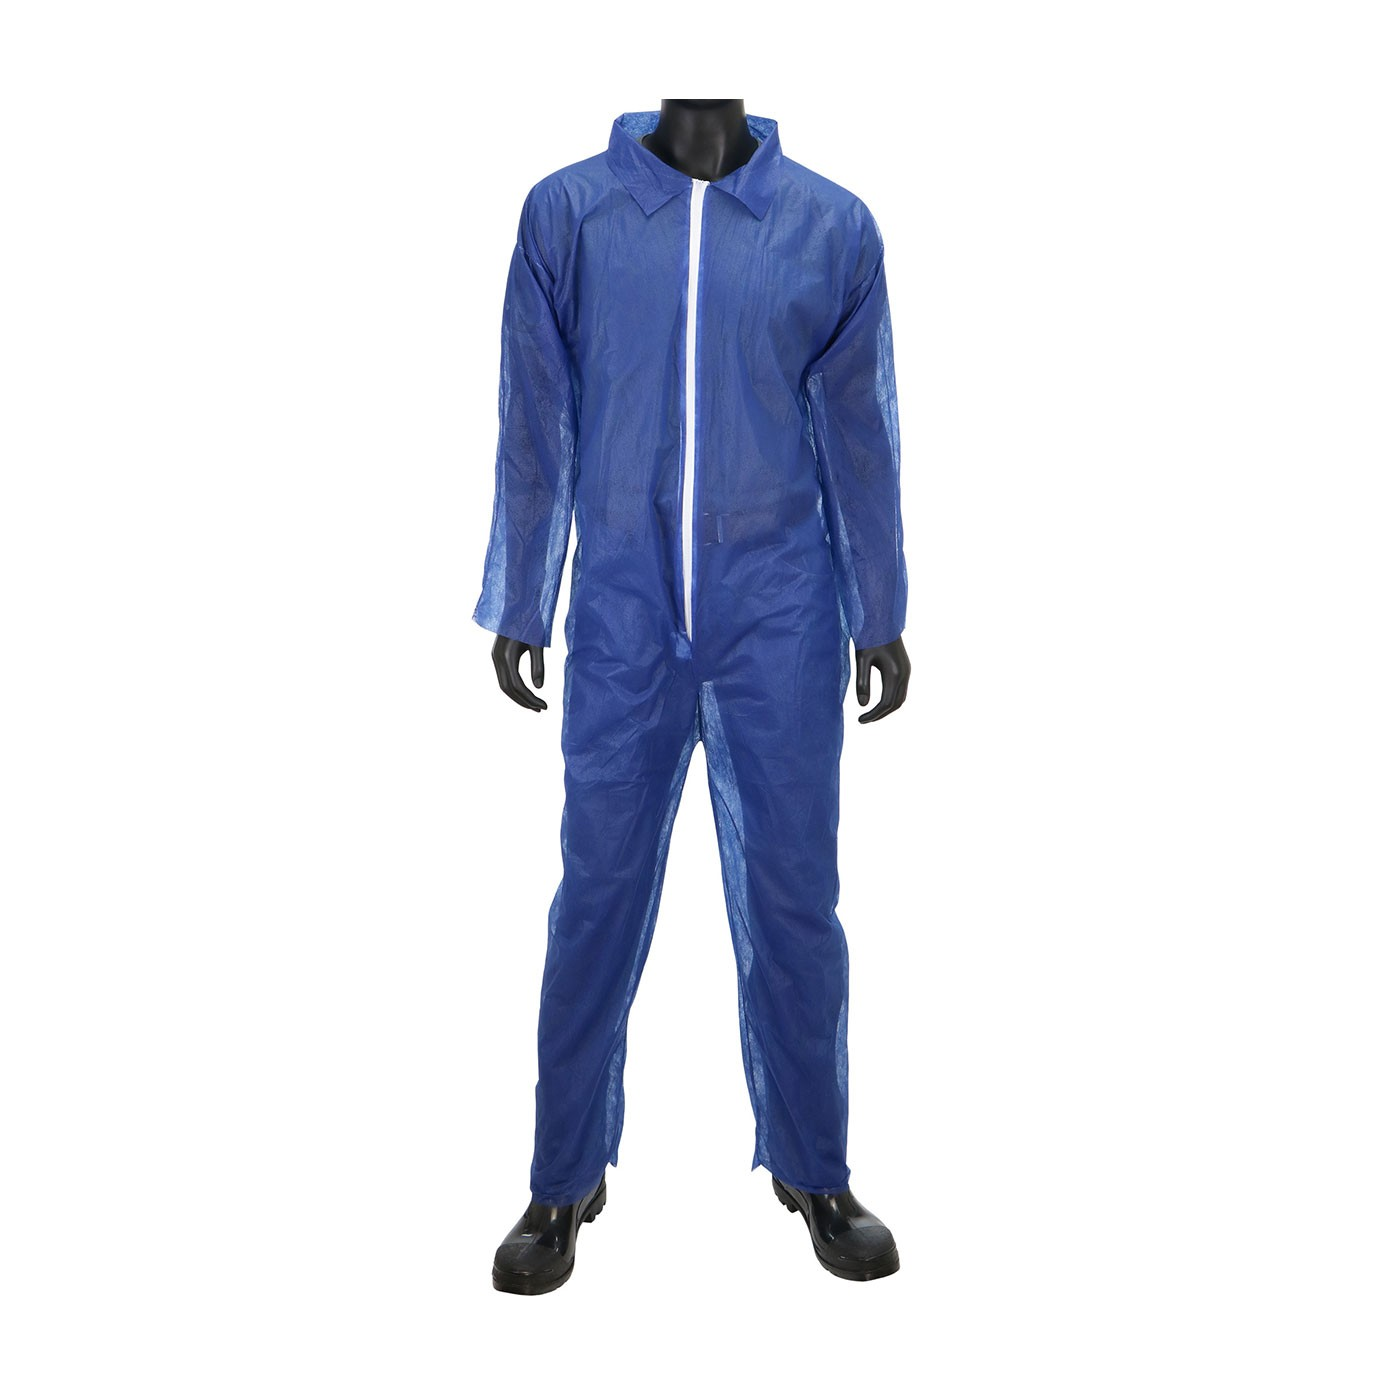 Standard Weight SBP Navy Basic Coverall (#3575)